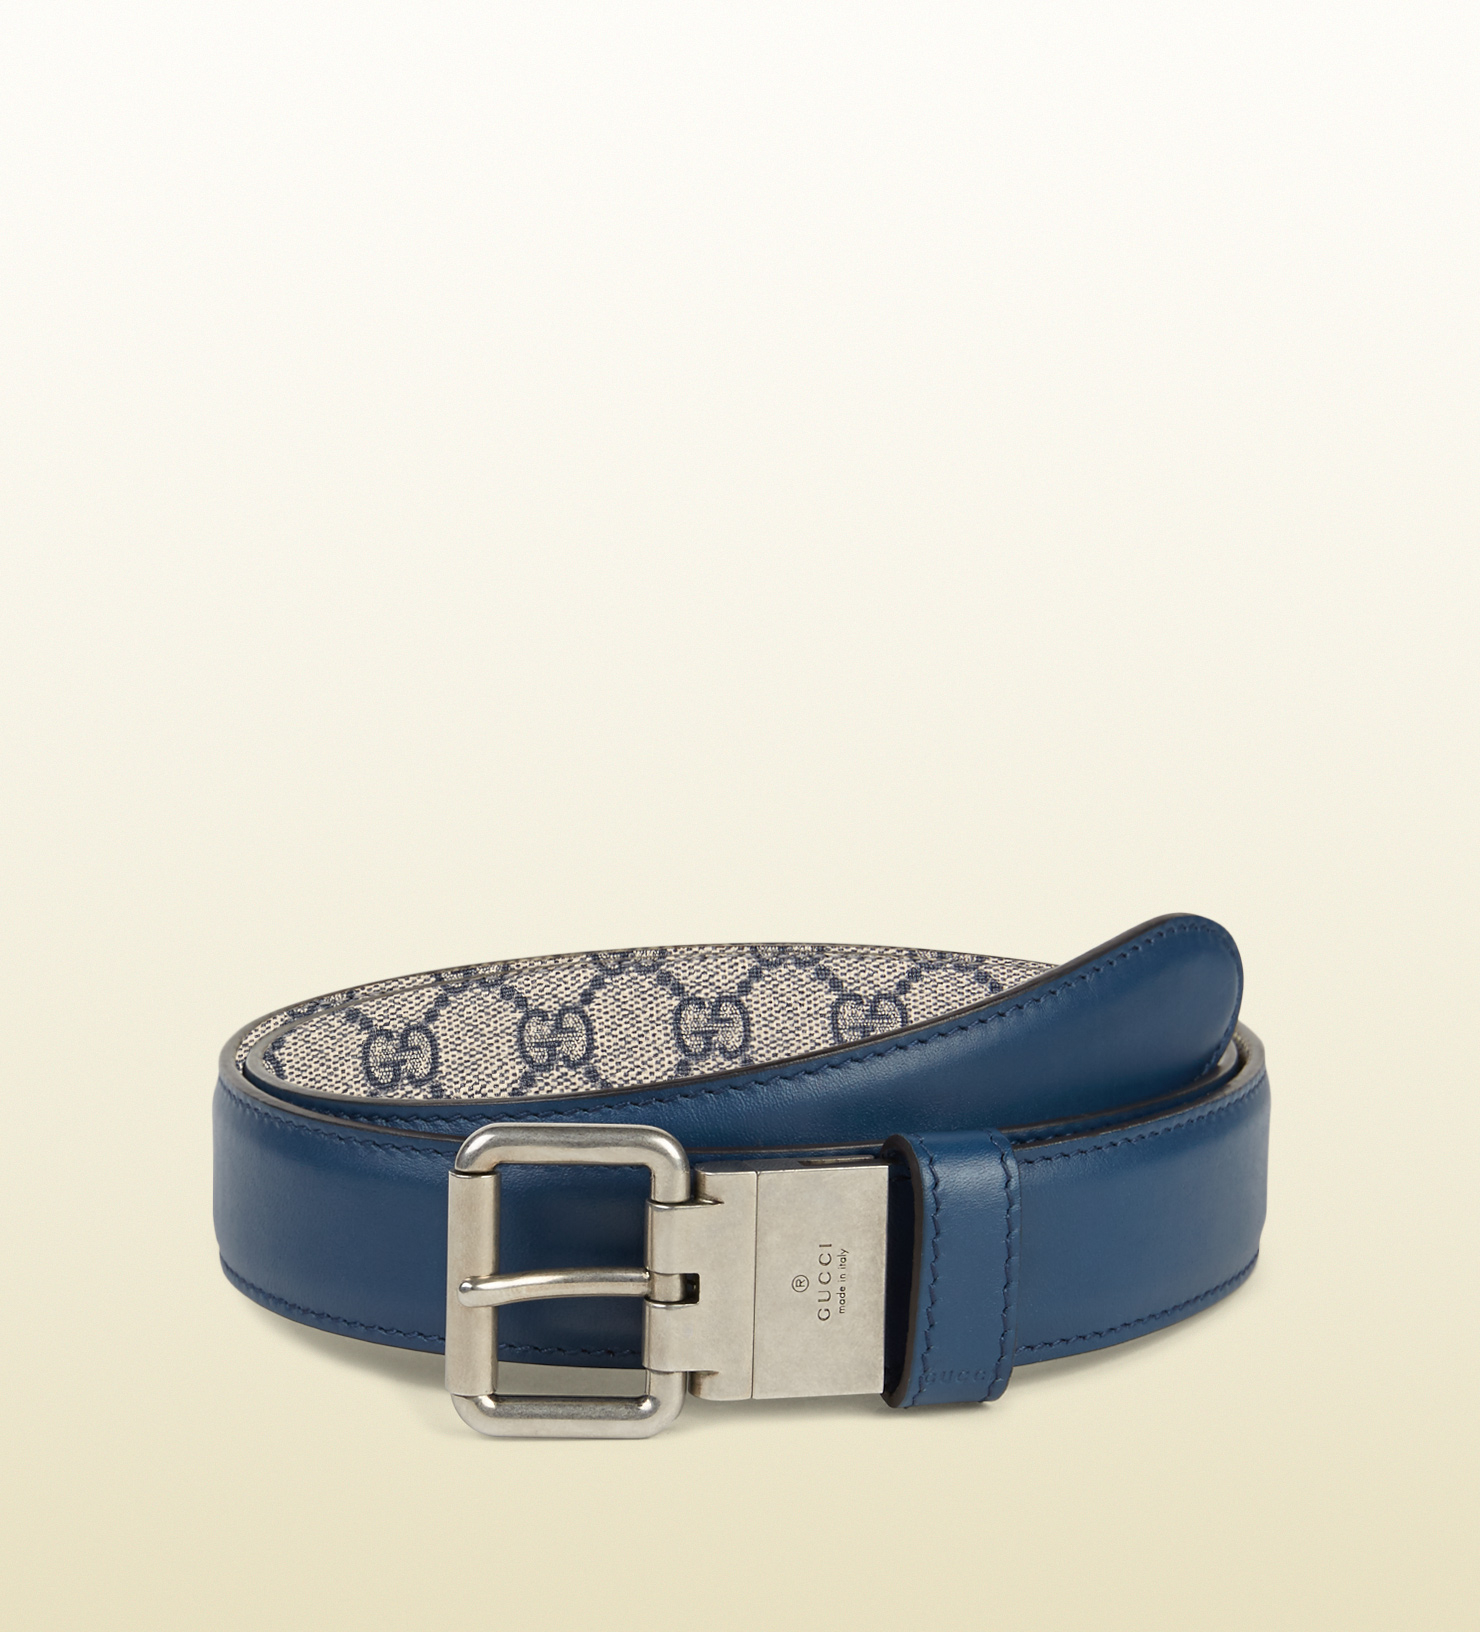 d6699d24e43 Lyst - Gucci Reversible Leather And Gg Supreme Belt in Orange for Men